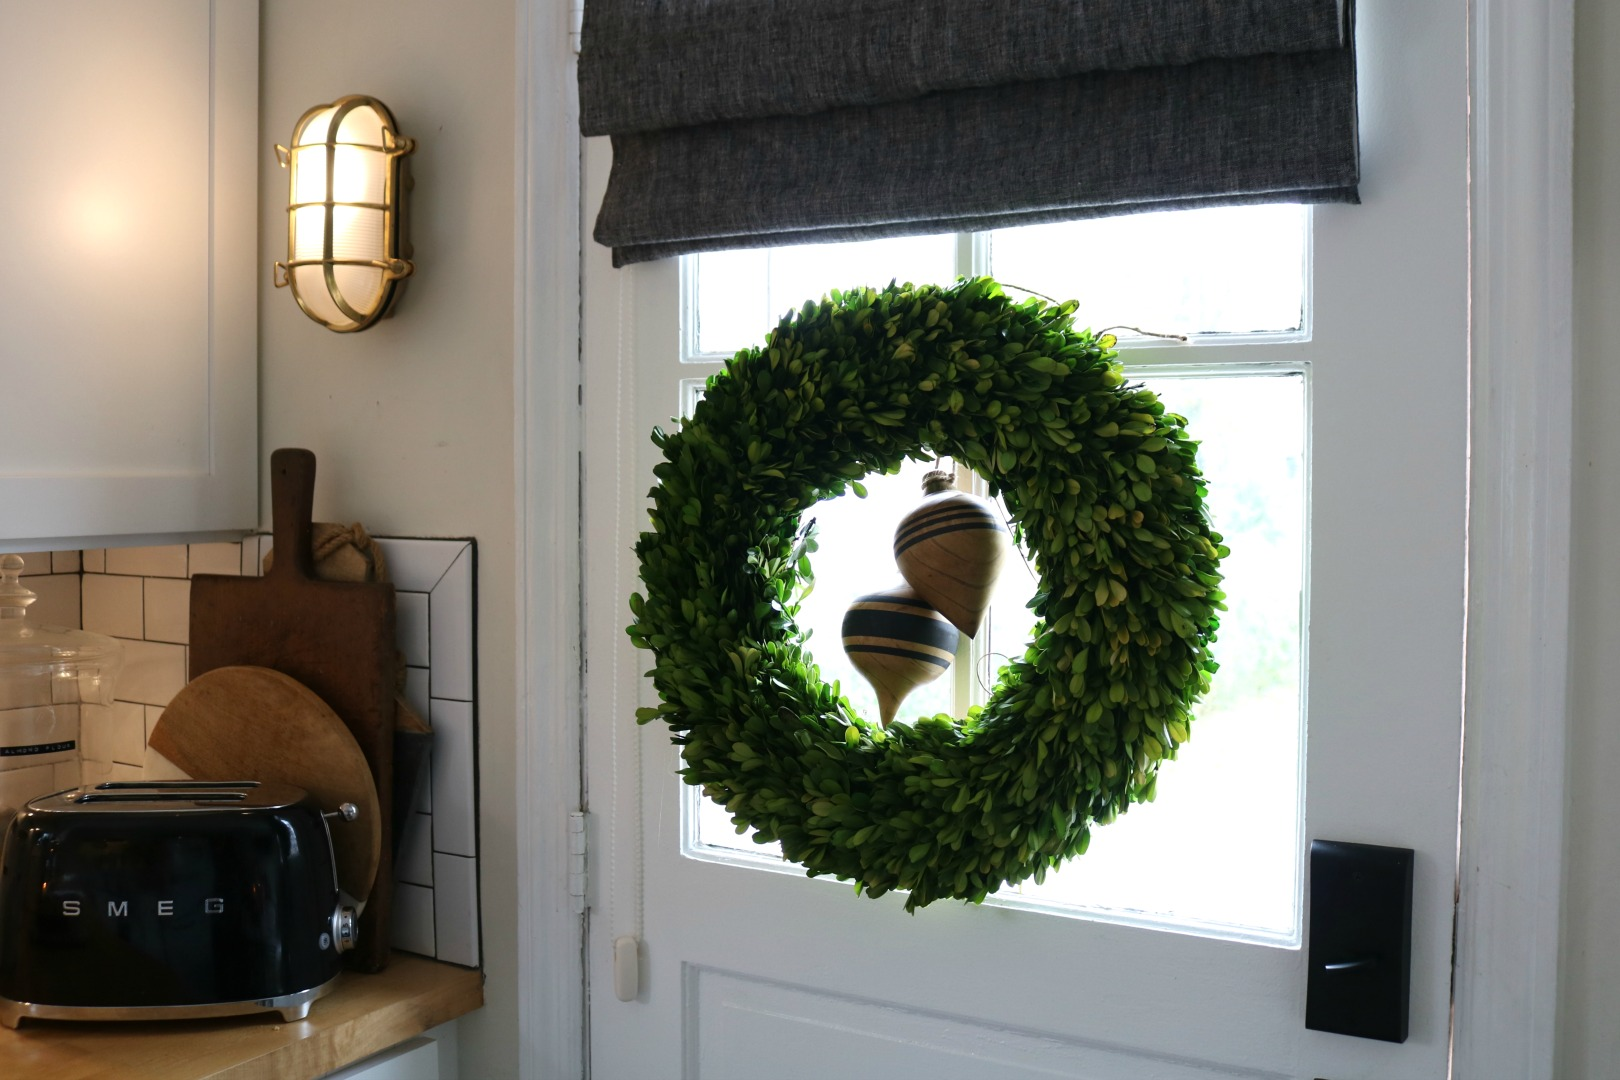 How to Create a Cozy Kitchen at Christmas